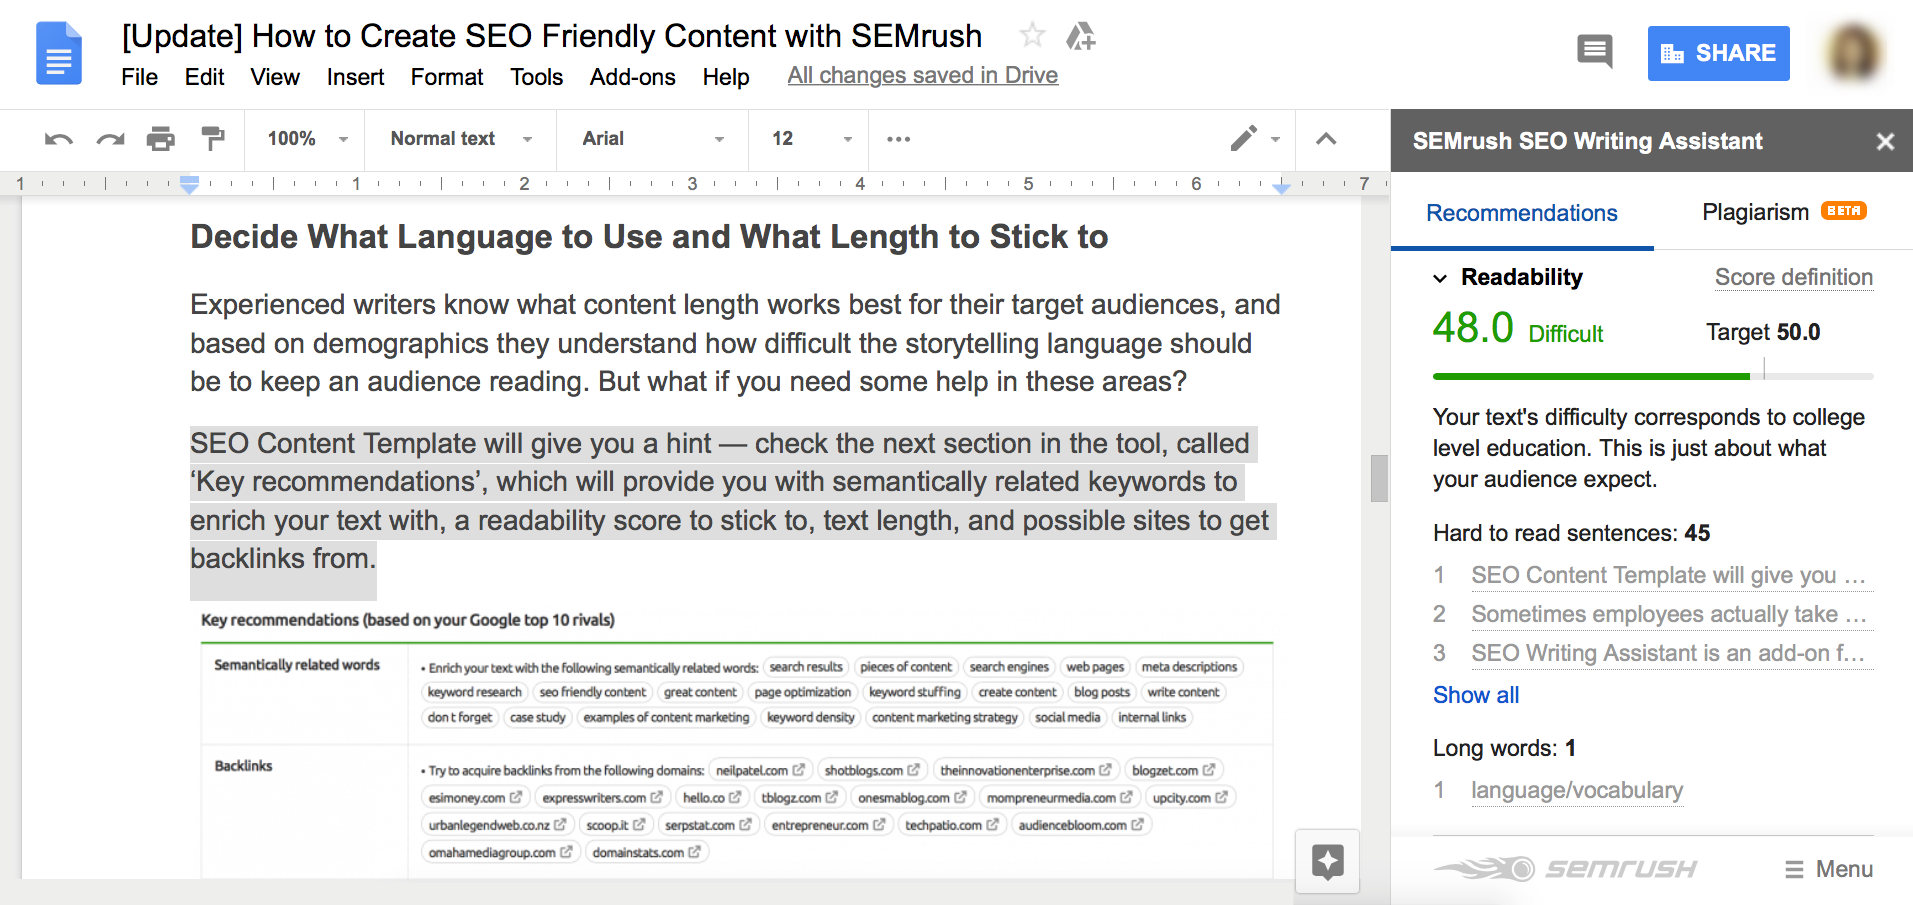 Some Known Factual Statements About Semrush Seo Writing Assistant